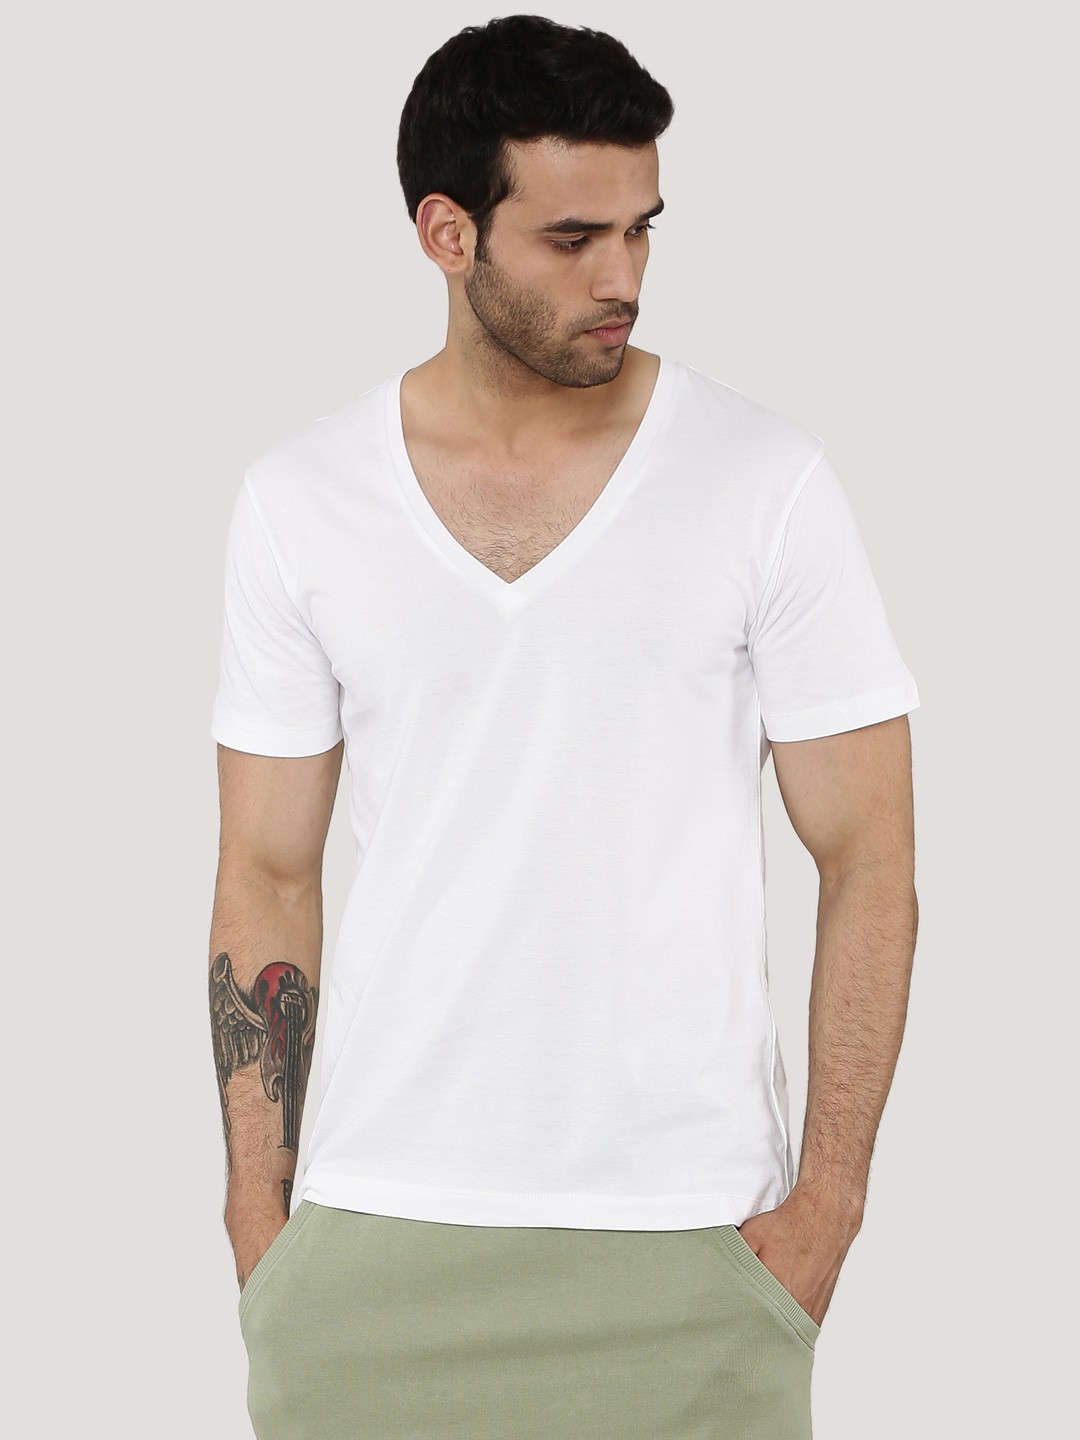 T-Shirt: Shop for Polo T Shirts online at best prices in India. Choose from a wide range of T Shirts For Men at distrib-wq9rfuqq.tk Get Free 1 or 2 day delivery with Amazon Prime, EMI offers, Cash on Delivery on eligible purchases.